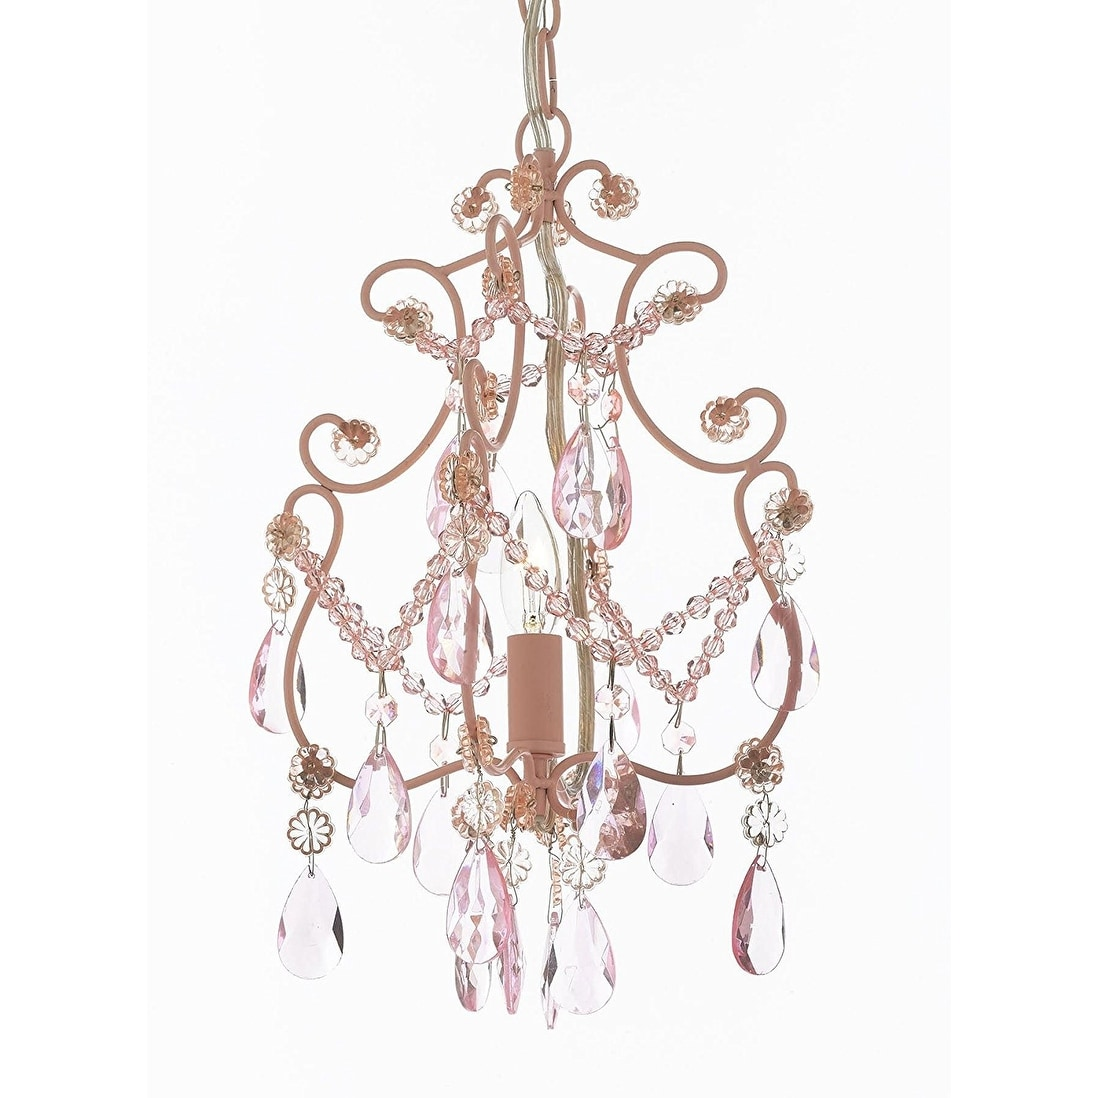 Wrought Iron And Crystal 1 Light Chandelier Pendant Pink Lighting Hardwire Plug In Perfect For Kid S Room